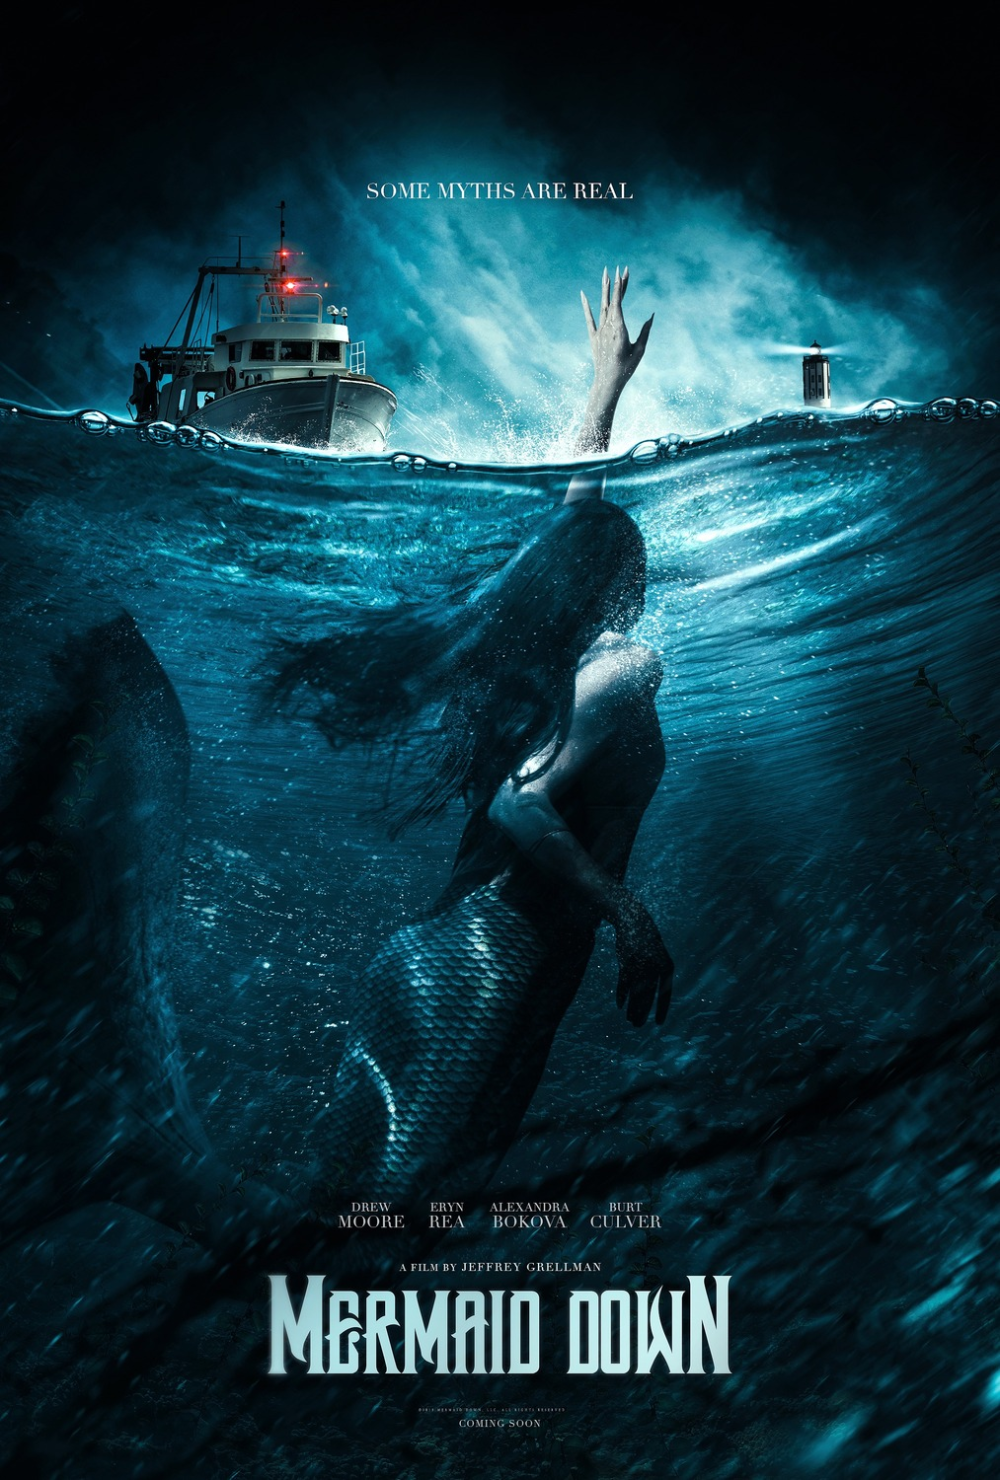 Return to the main poster page for Mermaid Down